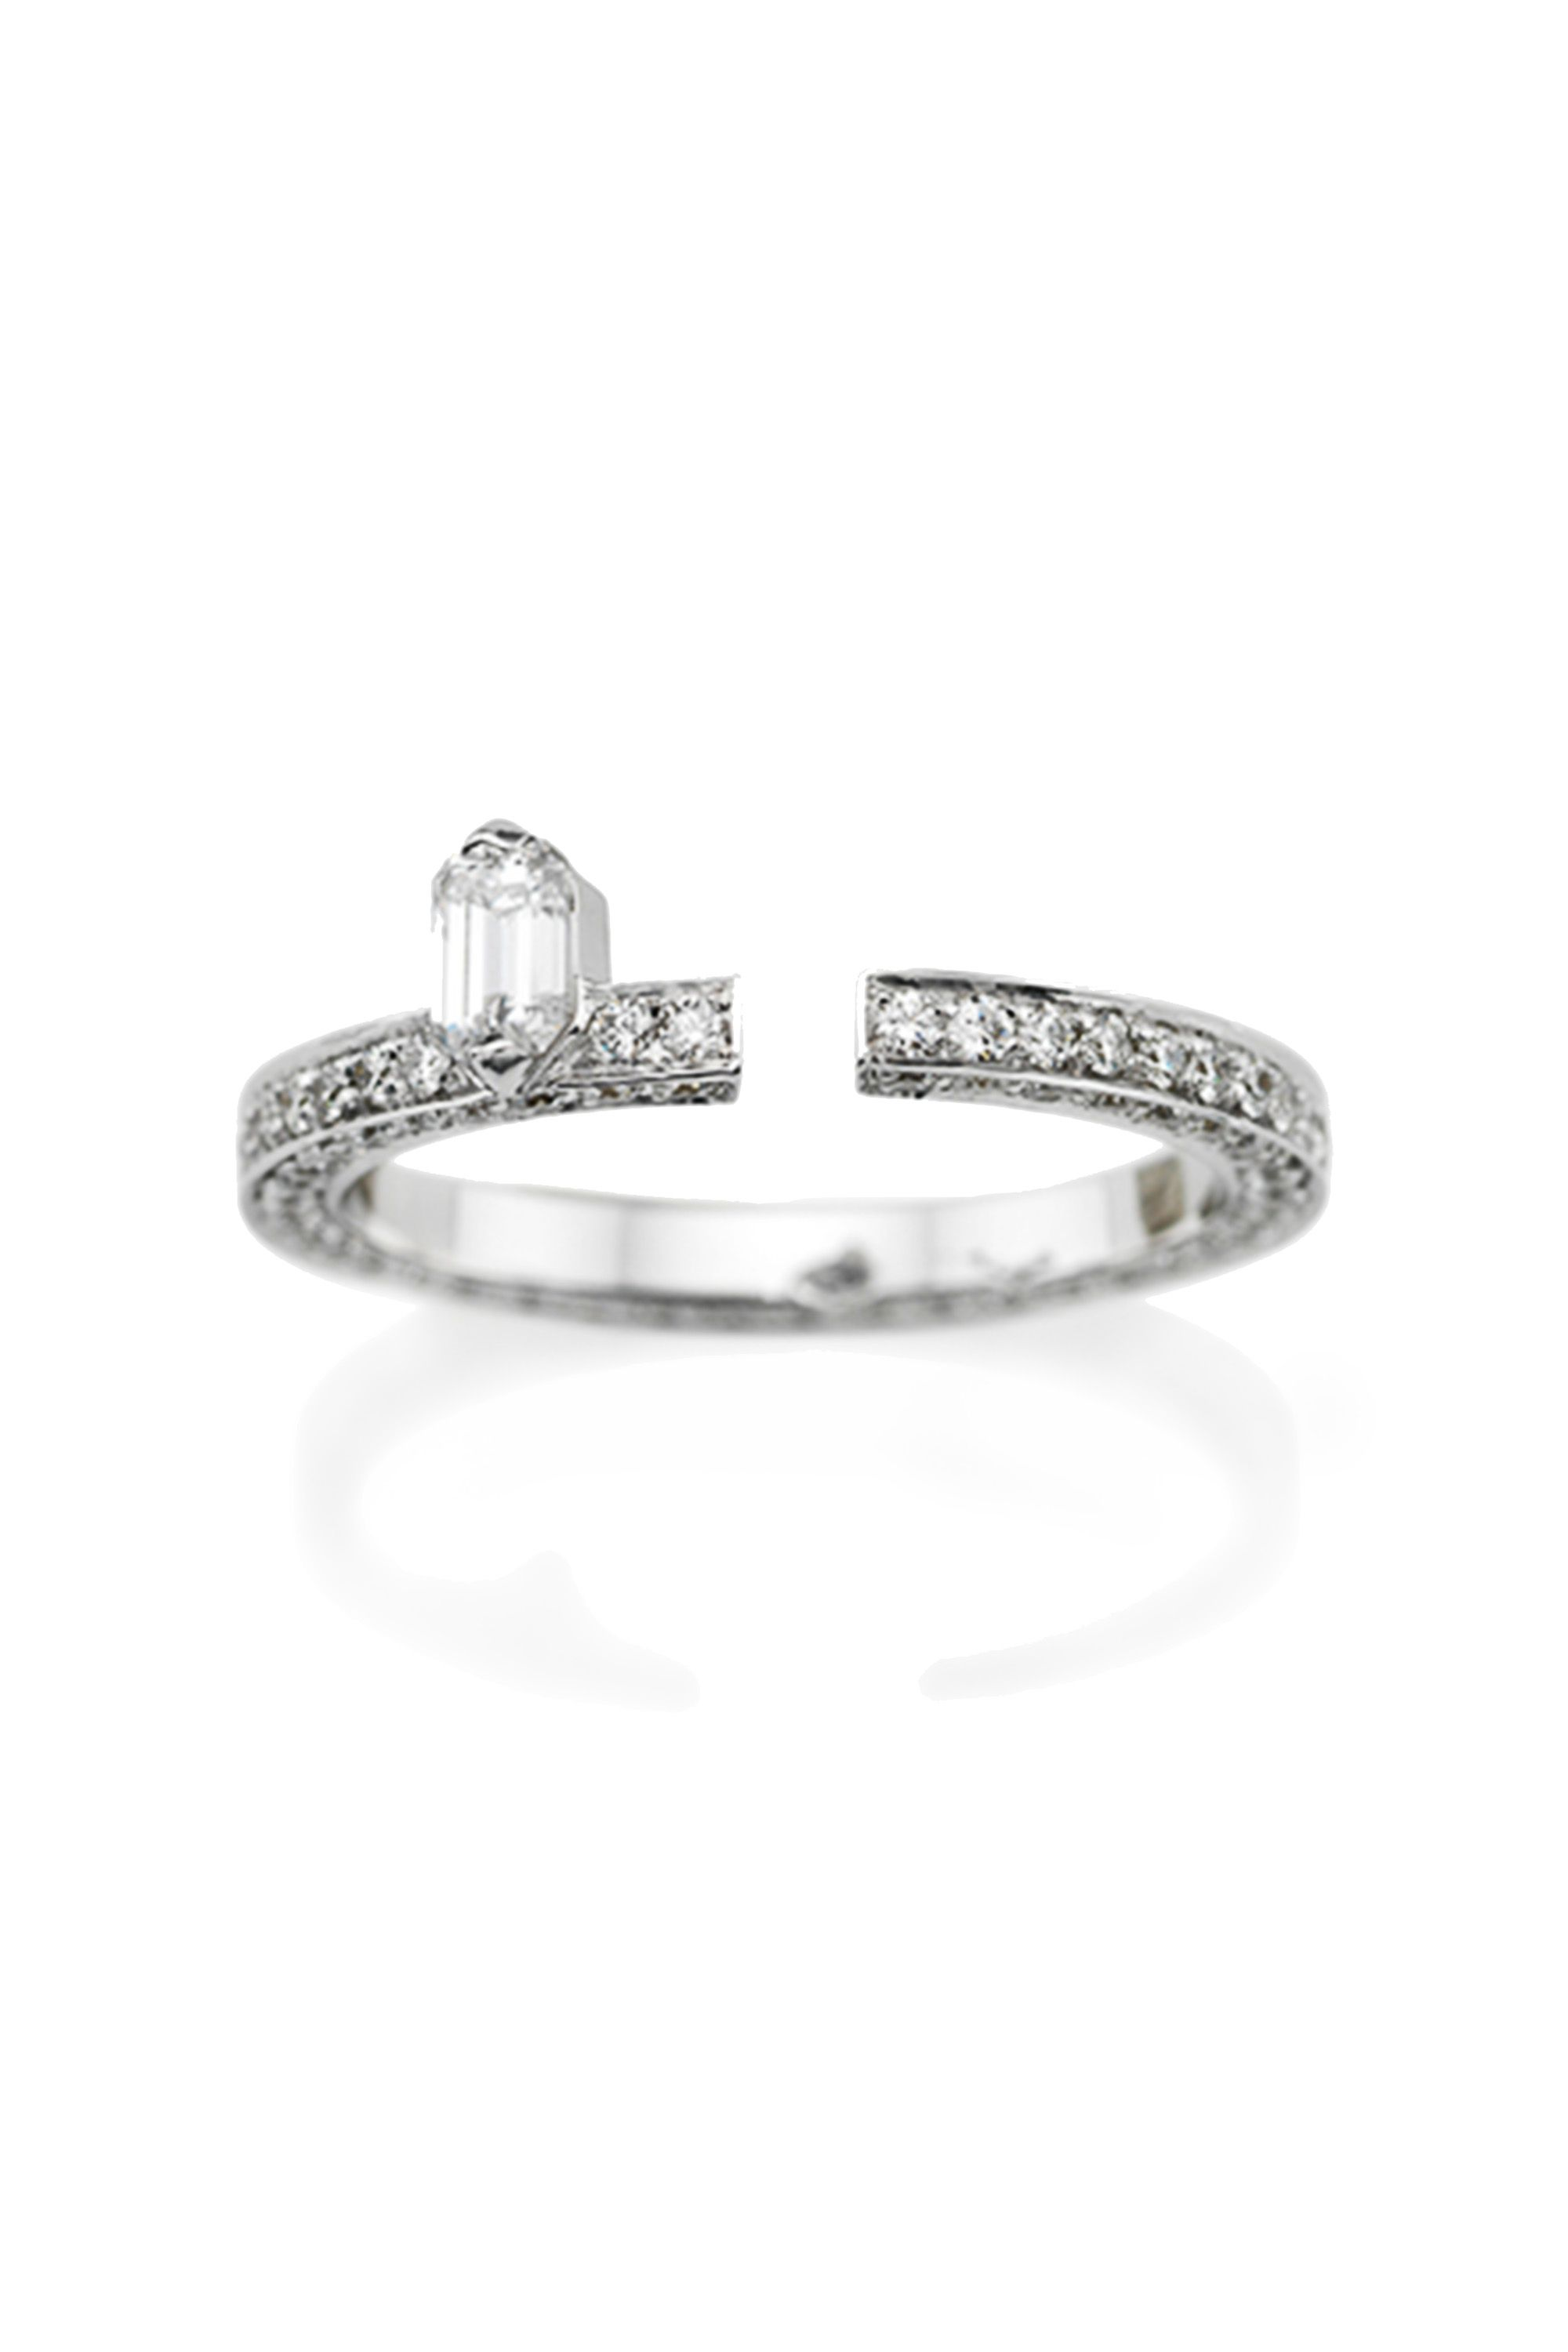 solitaire with luxury rings of bands wedding best go diamond to engagement